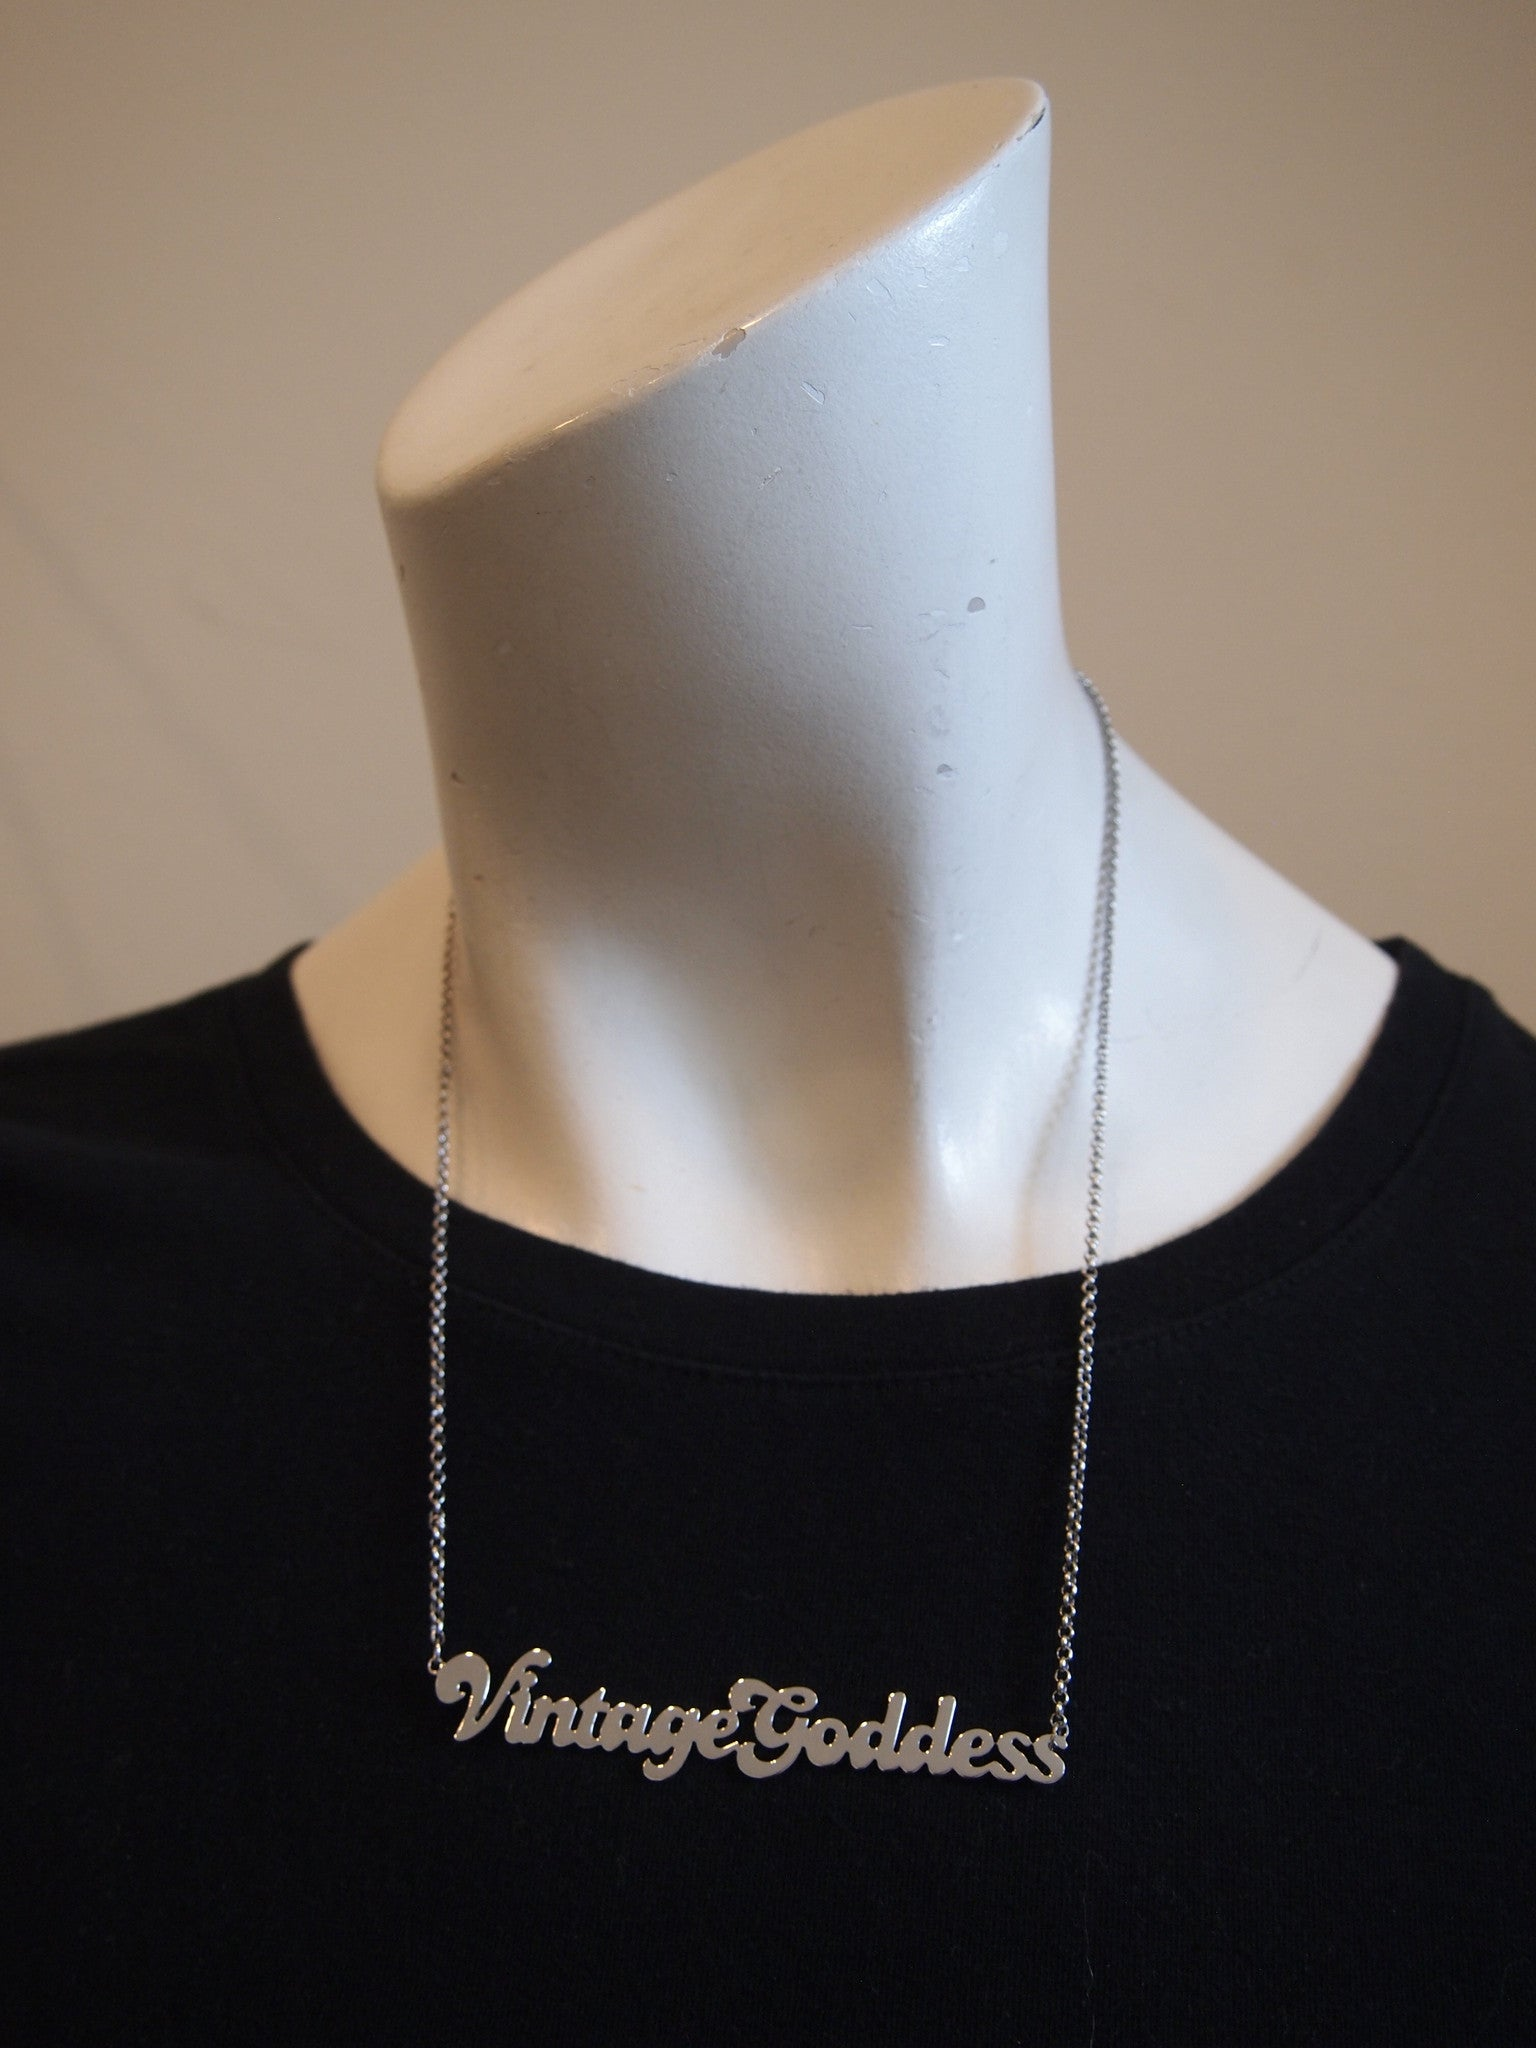 One-of-A-Kind Silver Nameplate Necklace - Vintage Goddess